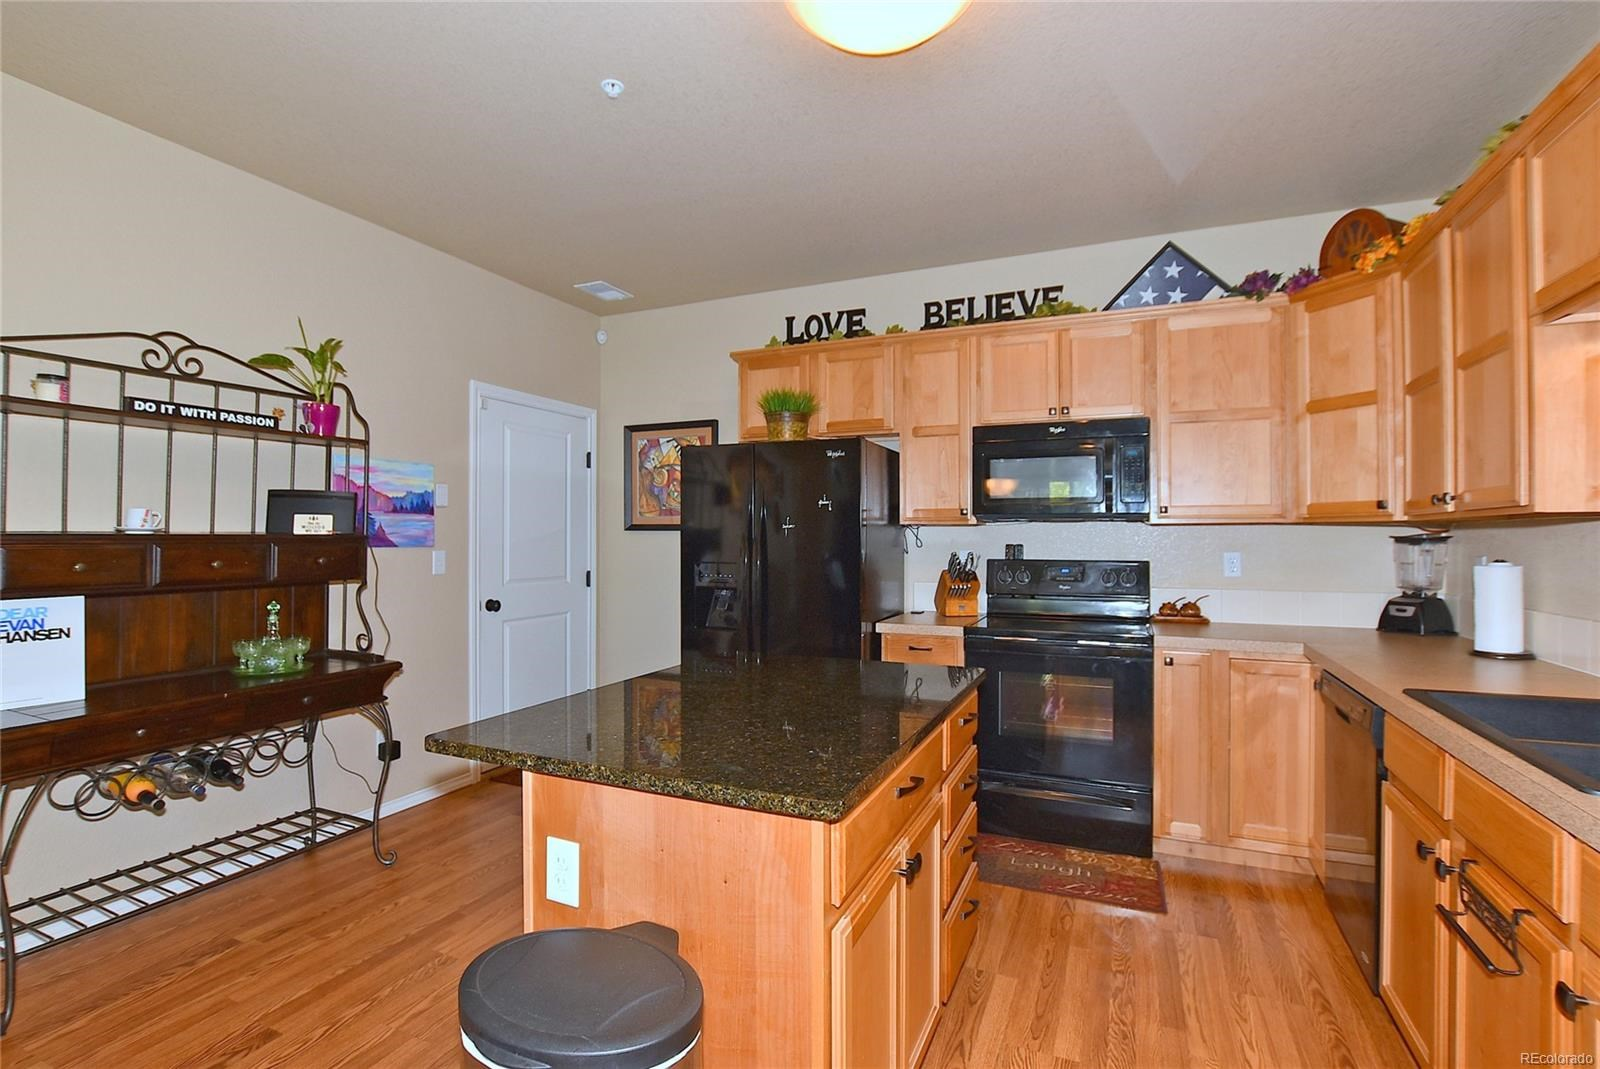 MLS# 5772080 - 11 - 6915 W 3rd Street #111, Greeley, CO 80634